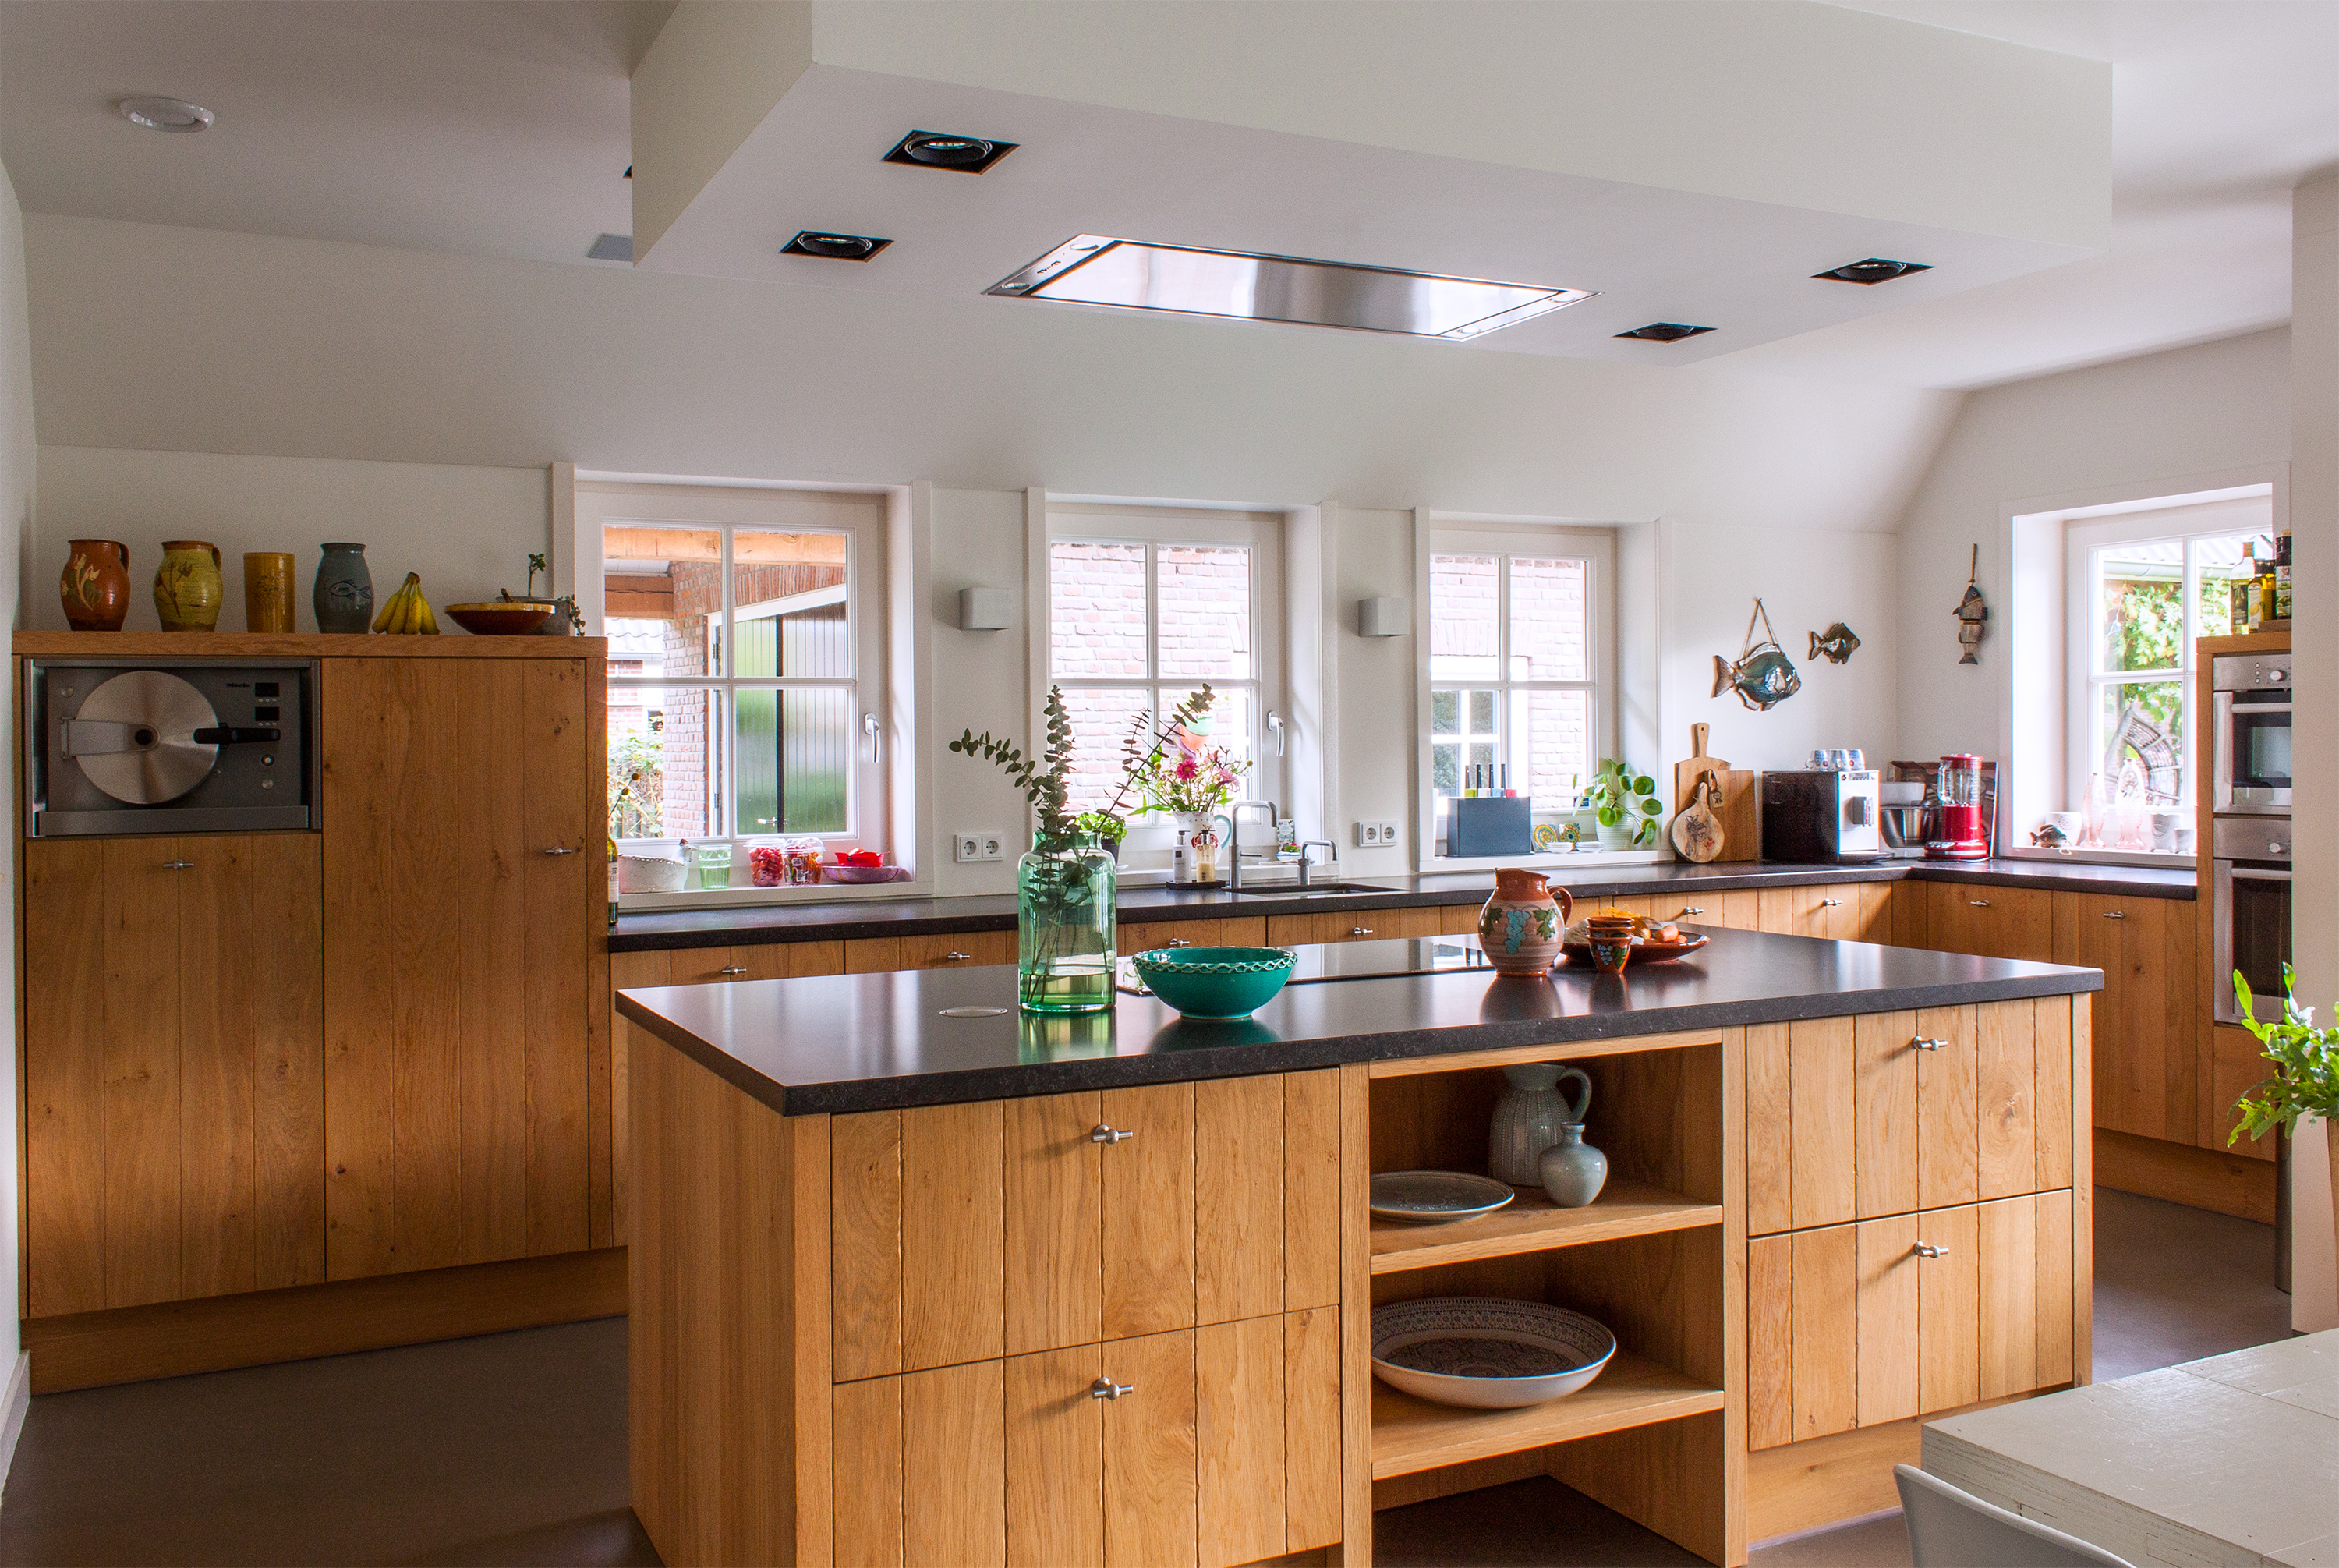 6 Modern Kitchens Rocking Natural Wood Cabinets | Apartment ...